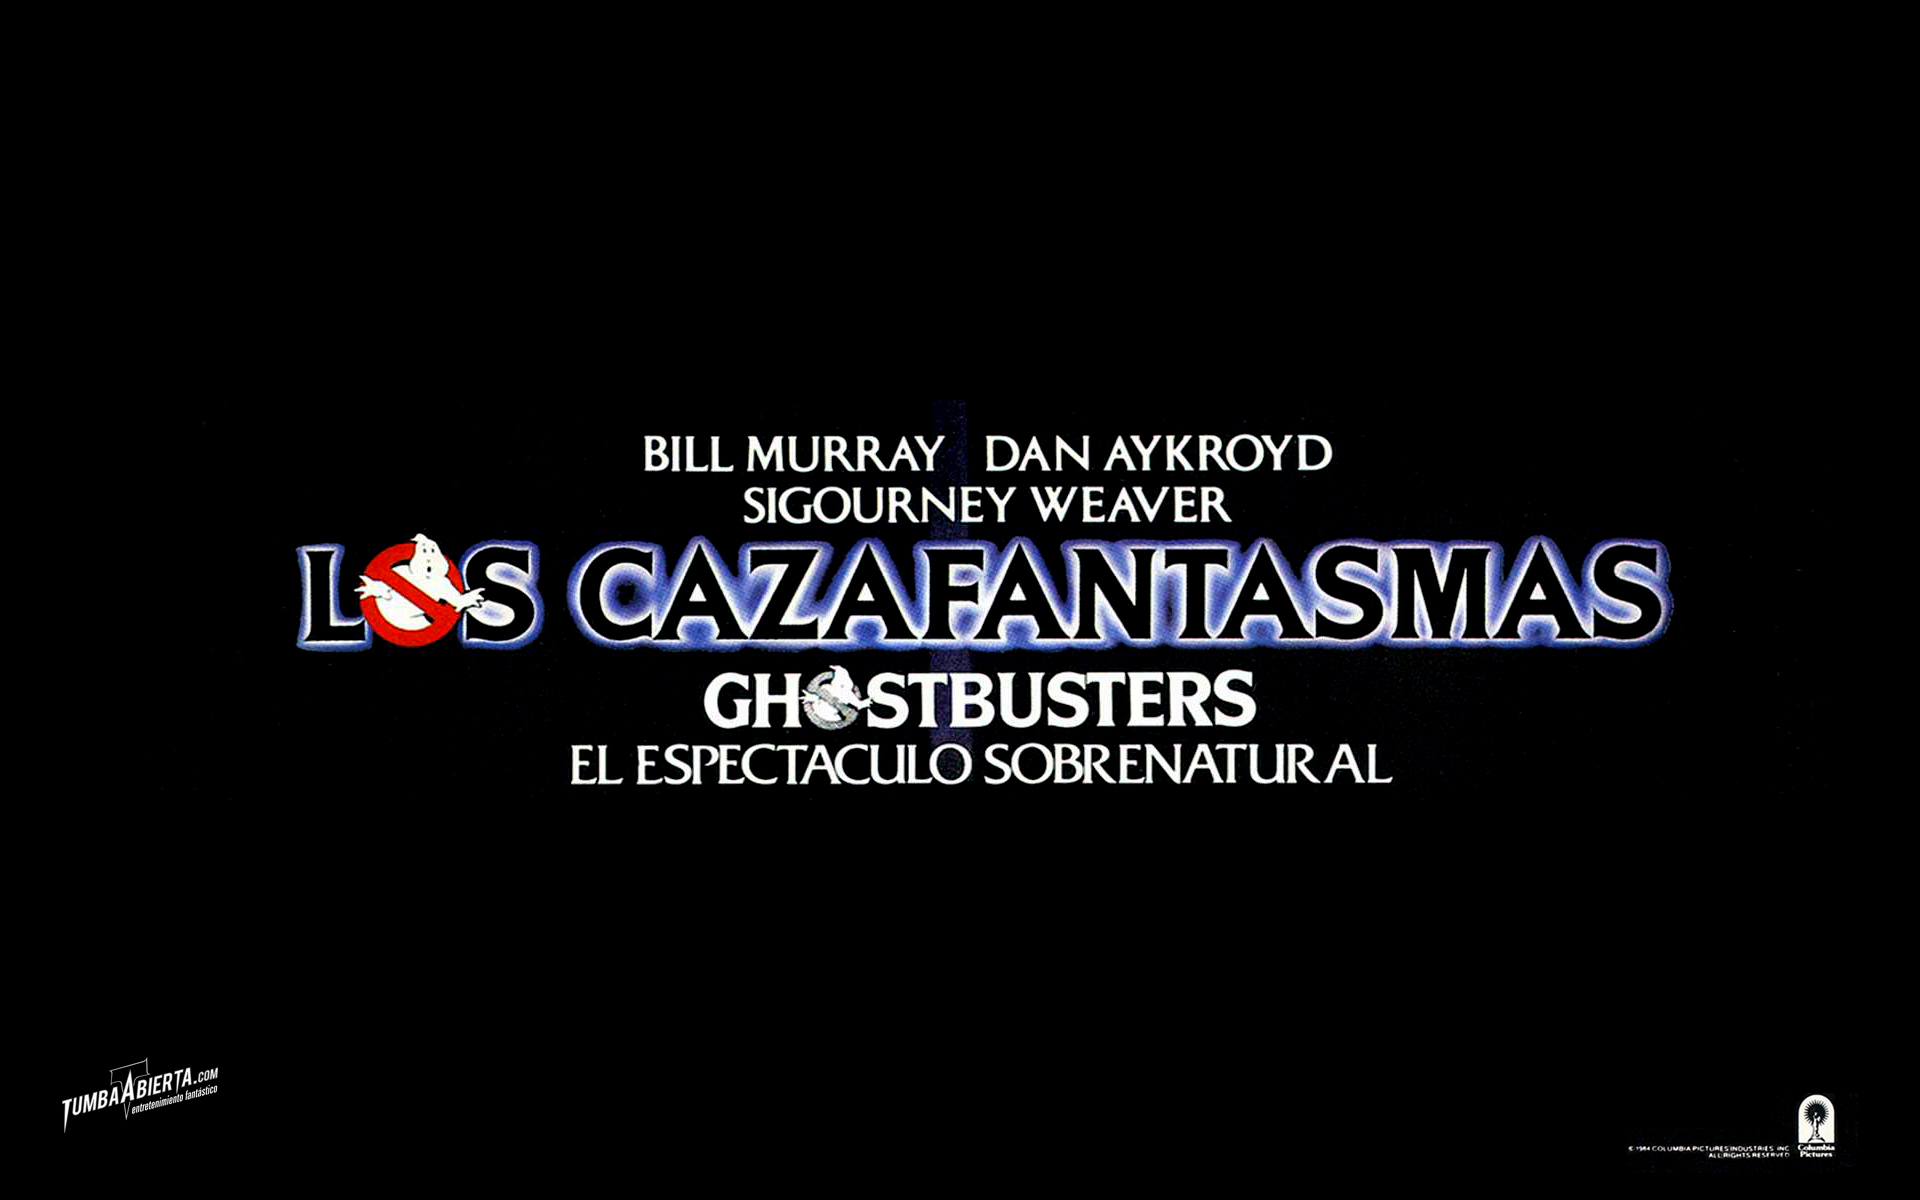 Wallpaper Los Cazafantasmas